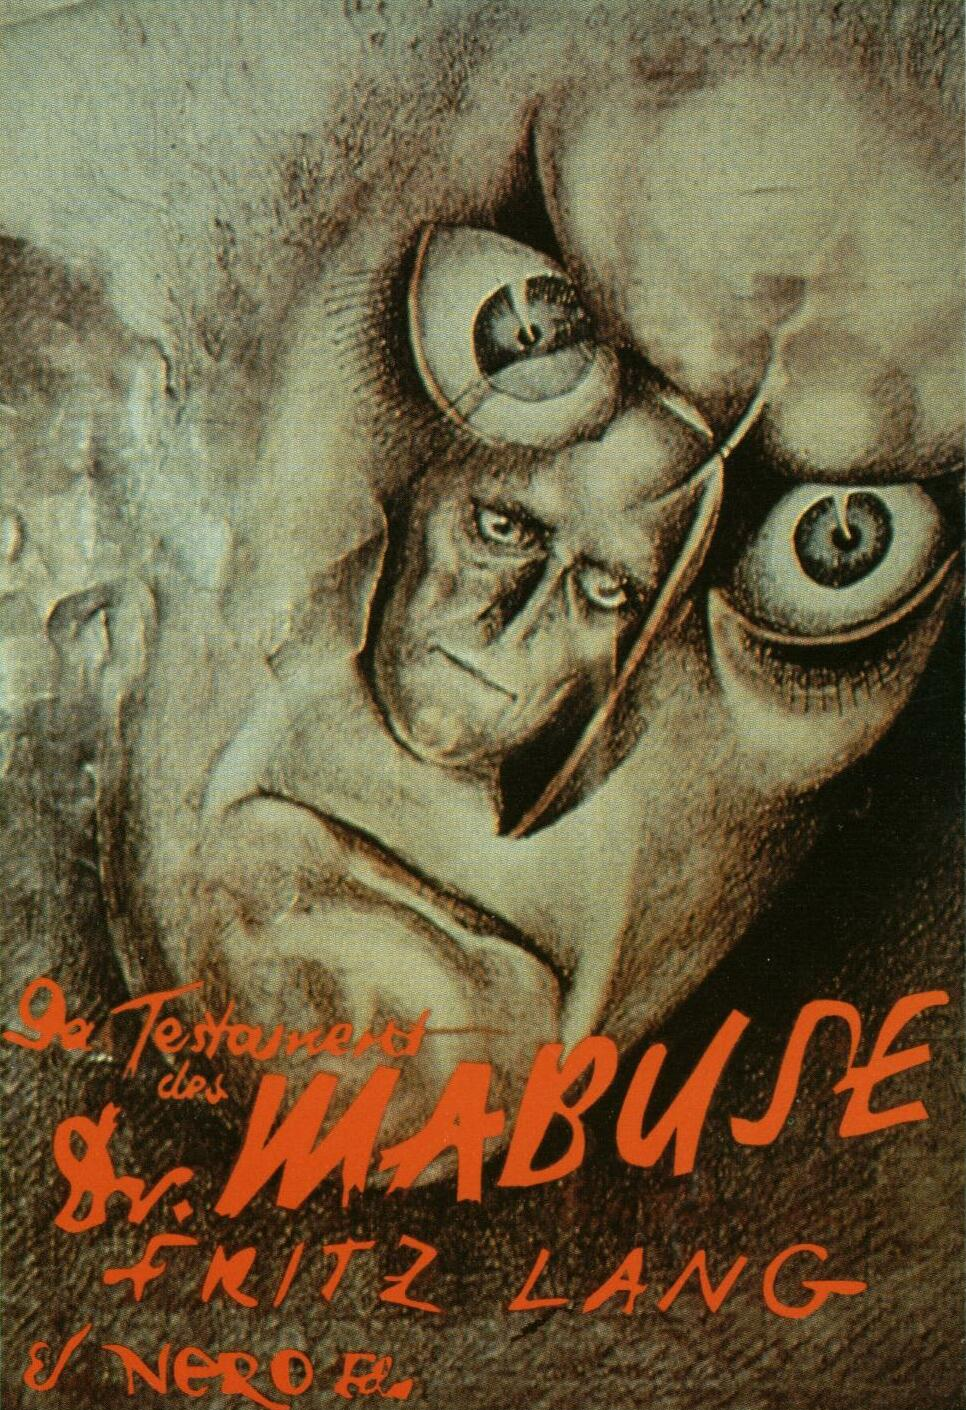 Bitter cinema poster of the week das testament des dr mabuse